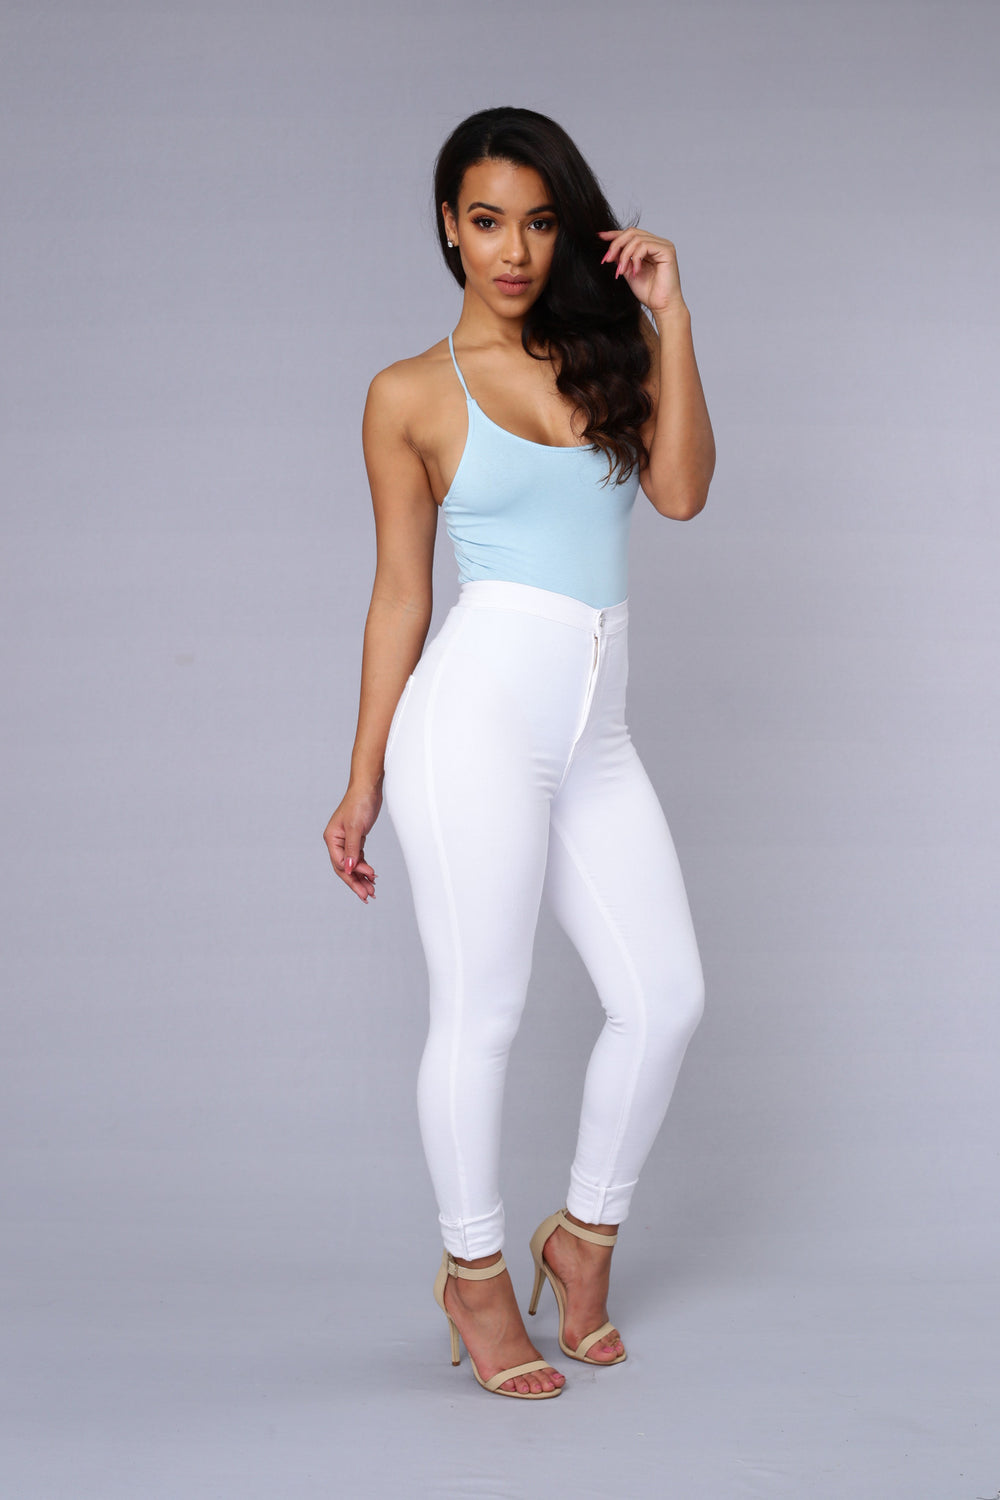 Wishful Thinking Bodysuit - Blue